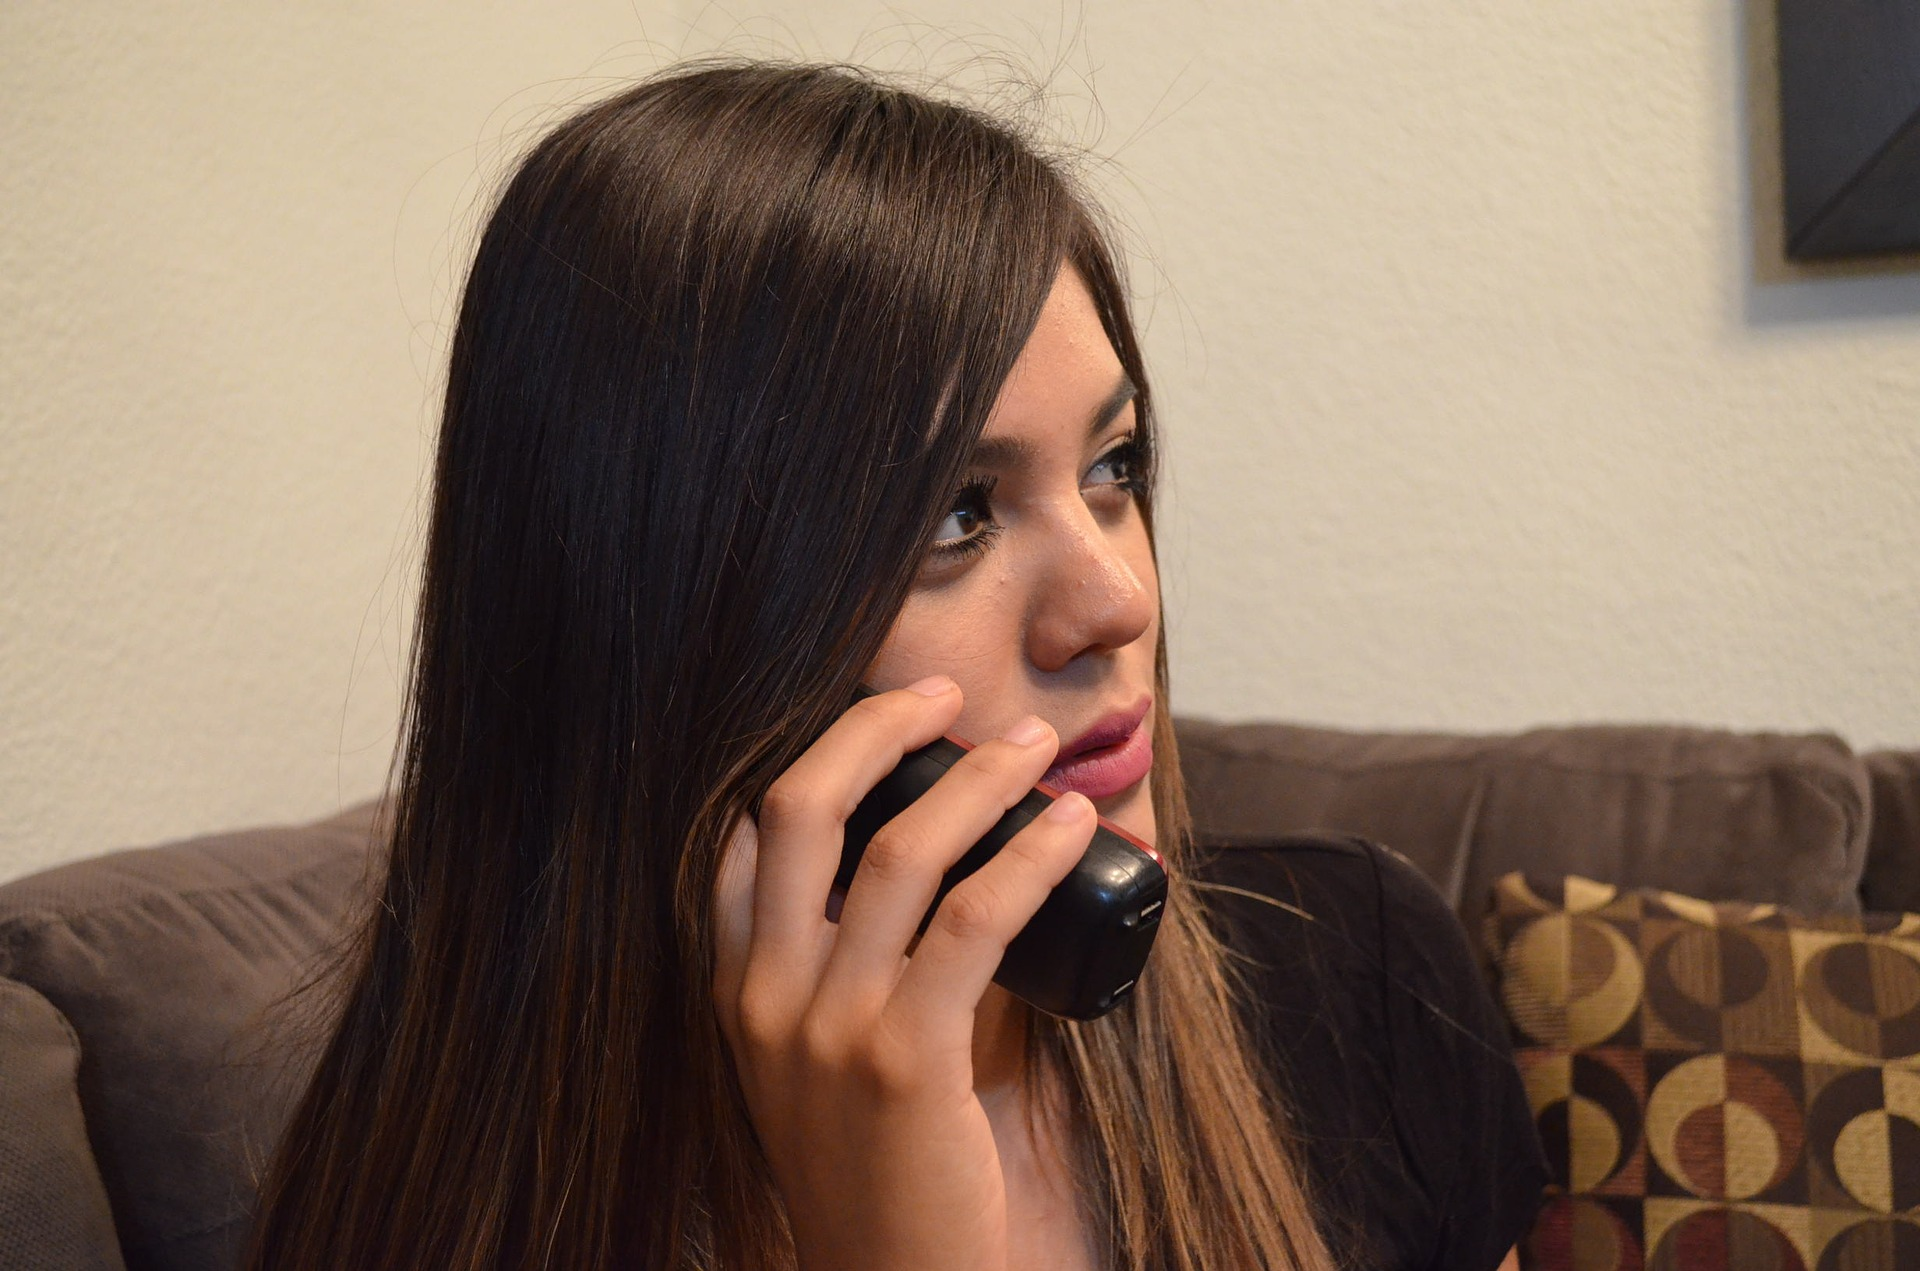 Chapter 7 Bankruptcy: Creditors Calling You at Work